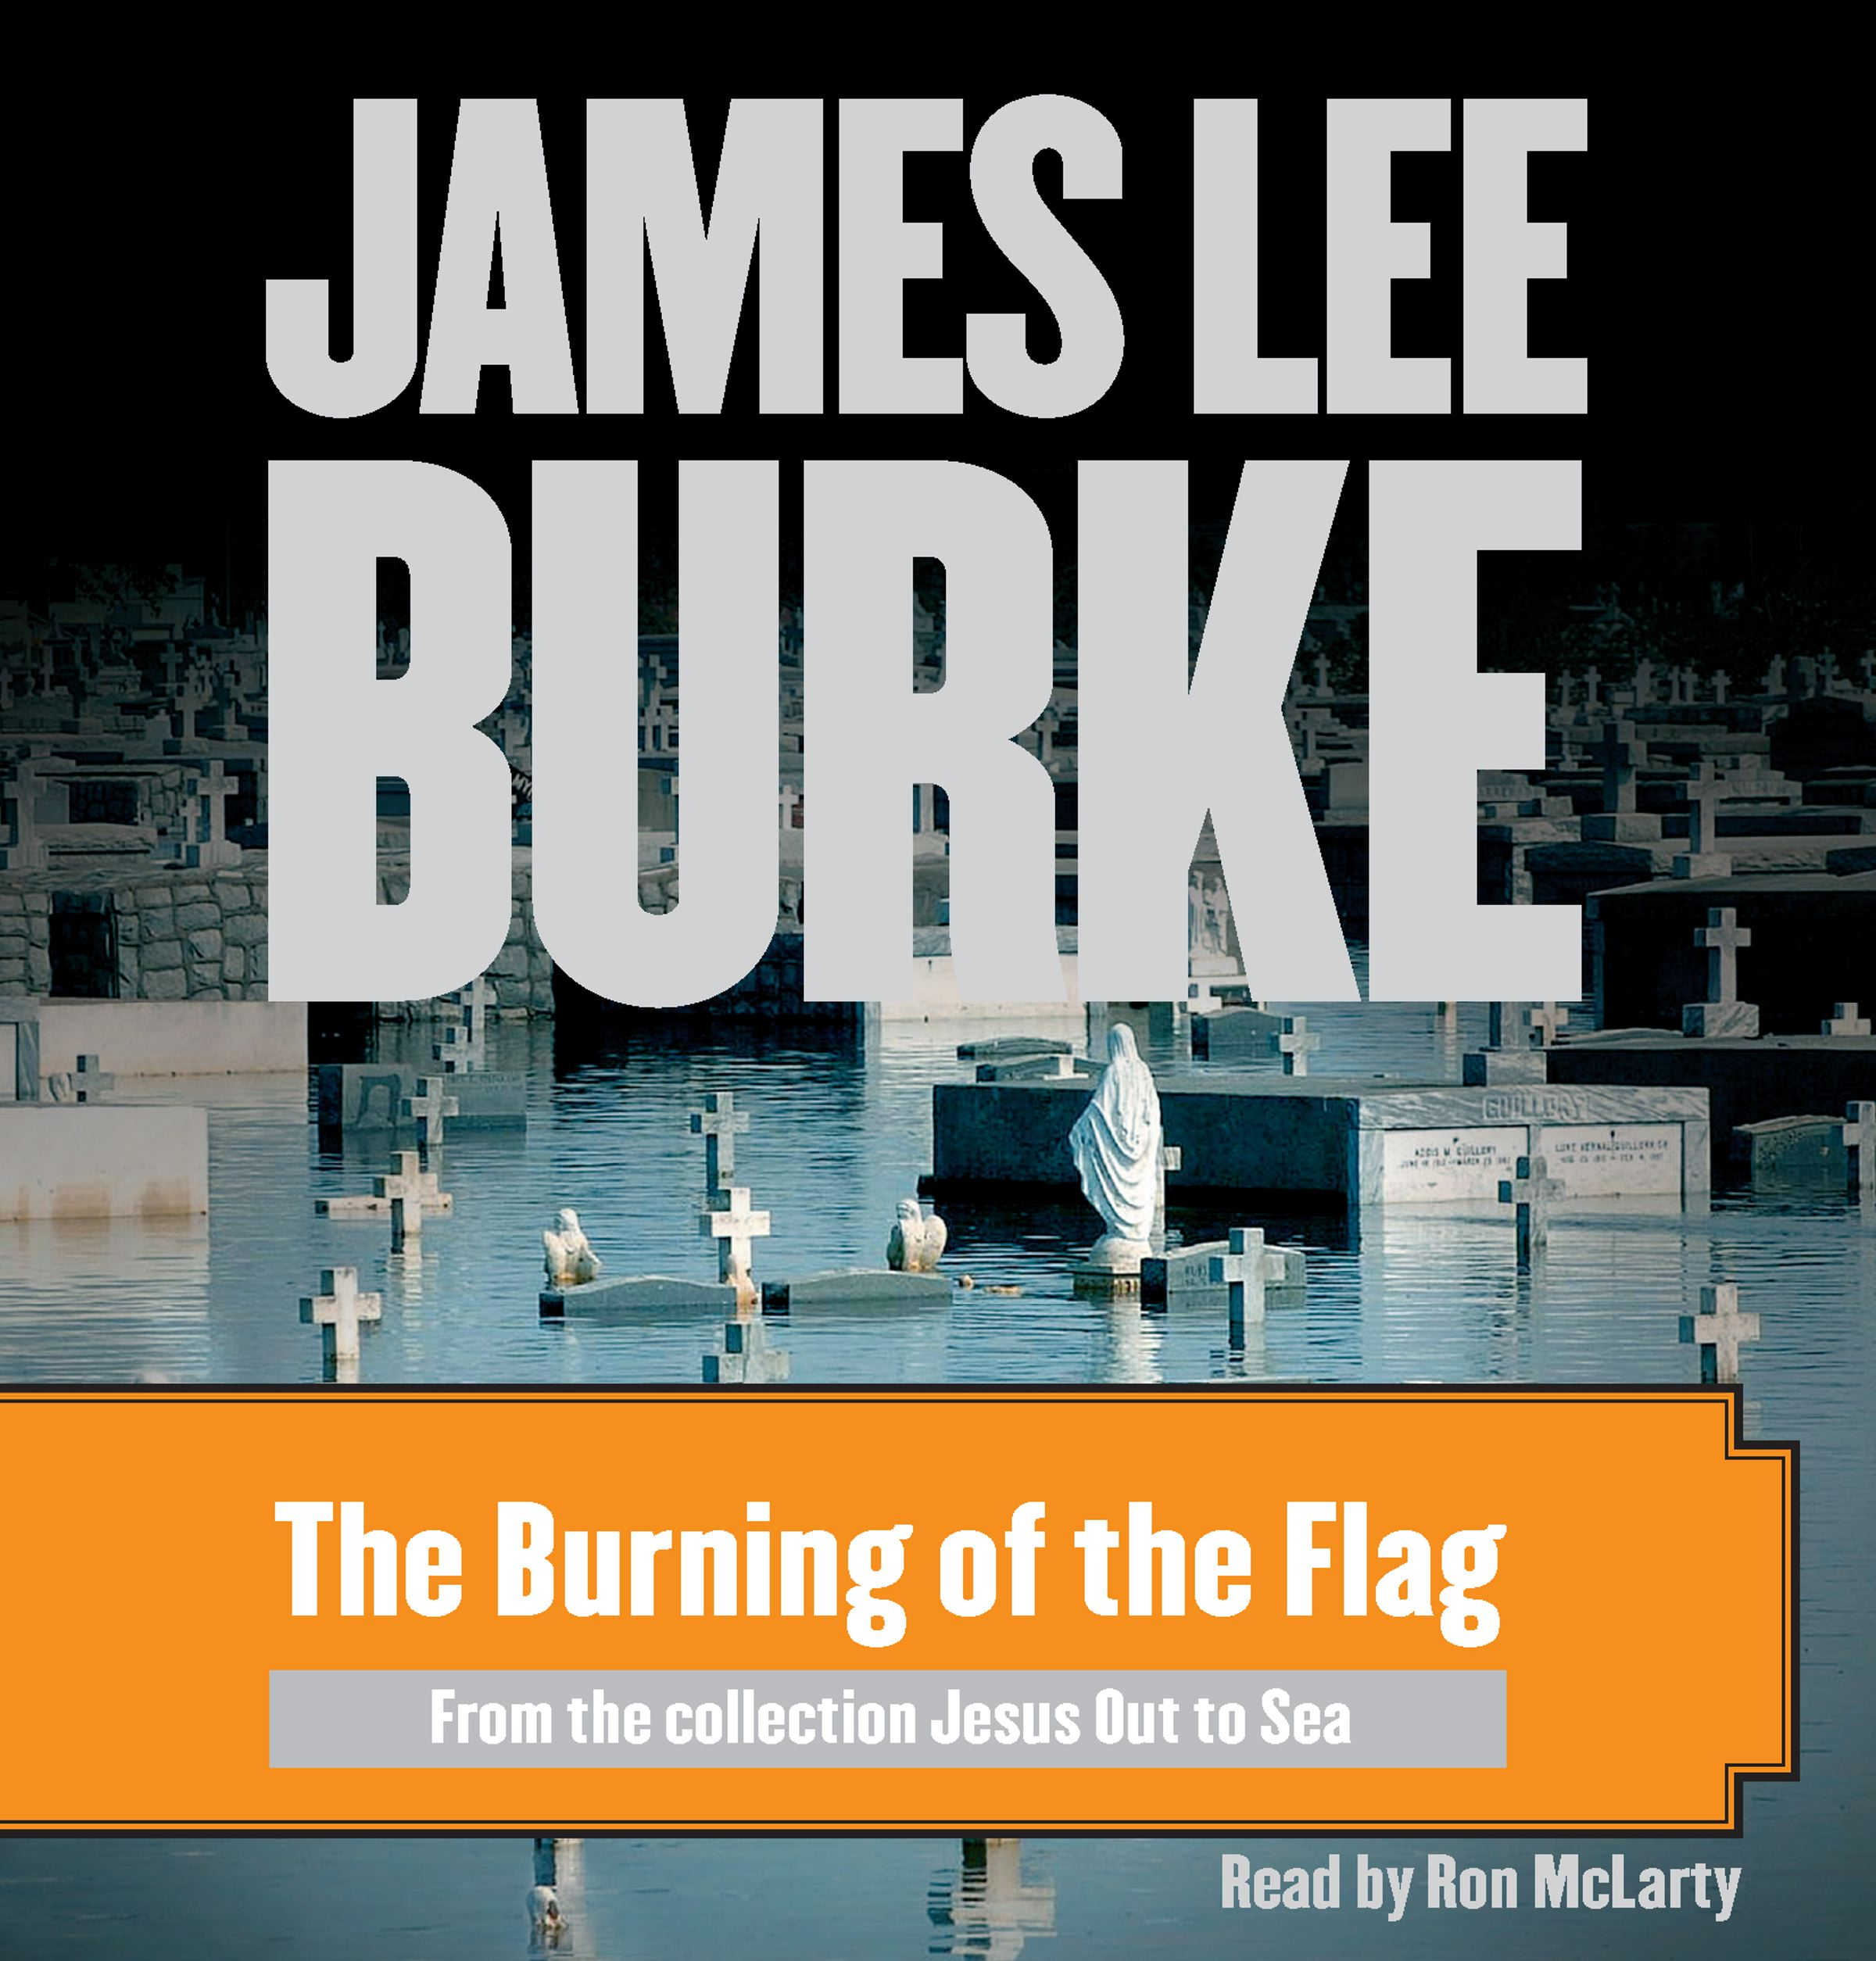 Burning-of-the-flag-9780743571494_hr